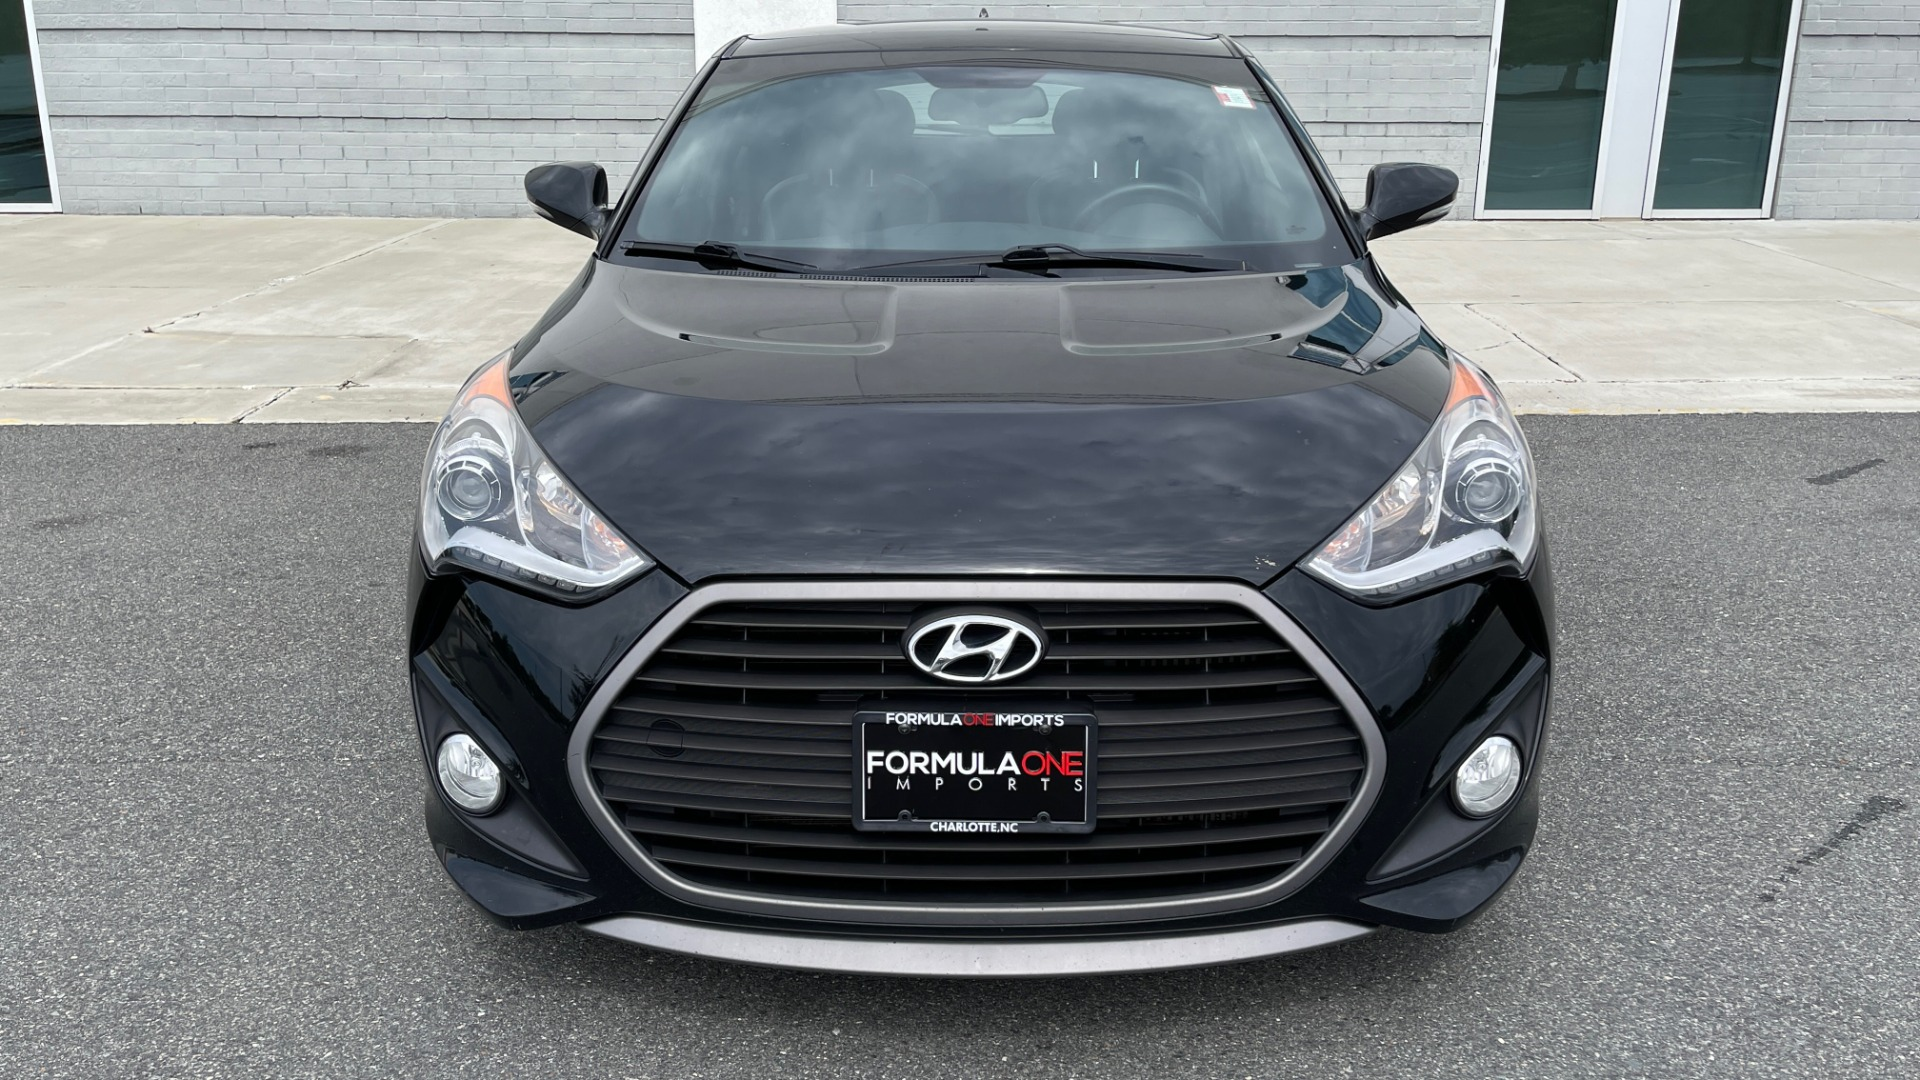 Used 2016 Hyundai VELOSTER TURBO 1.6L / AUTO / NAV / PANO-ROOF / REARVIEW for sale Sold at Formula Imports in Charlotte NC 28227 11